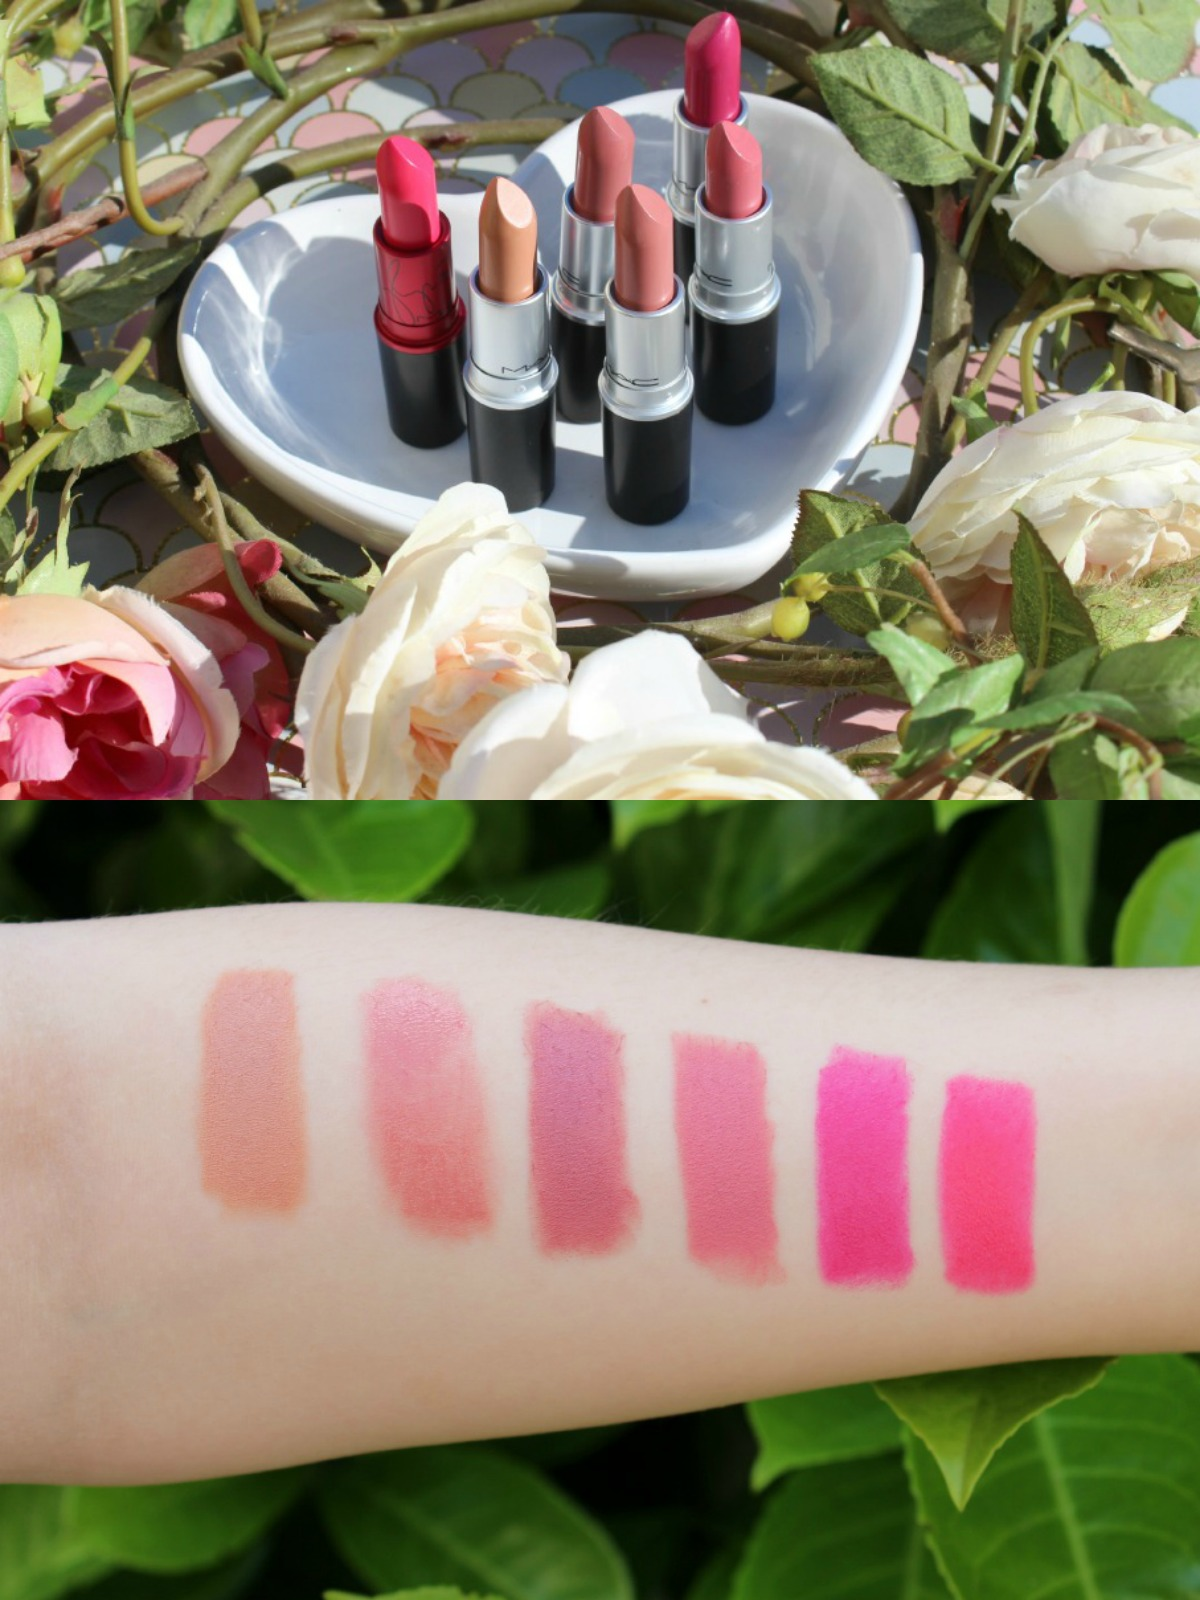 MAC Cosmetics Lipsticks Swatches, Peachstock, Girl About Town, Viva Glam Miley Cyrus, Brave, Patisserie, Please Me.